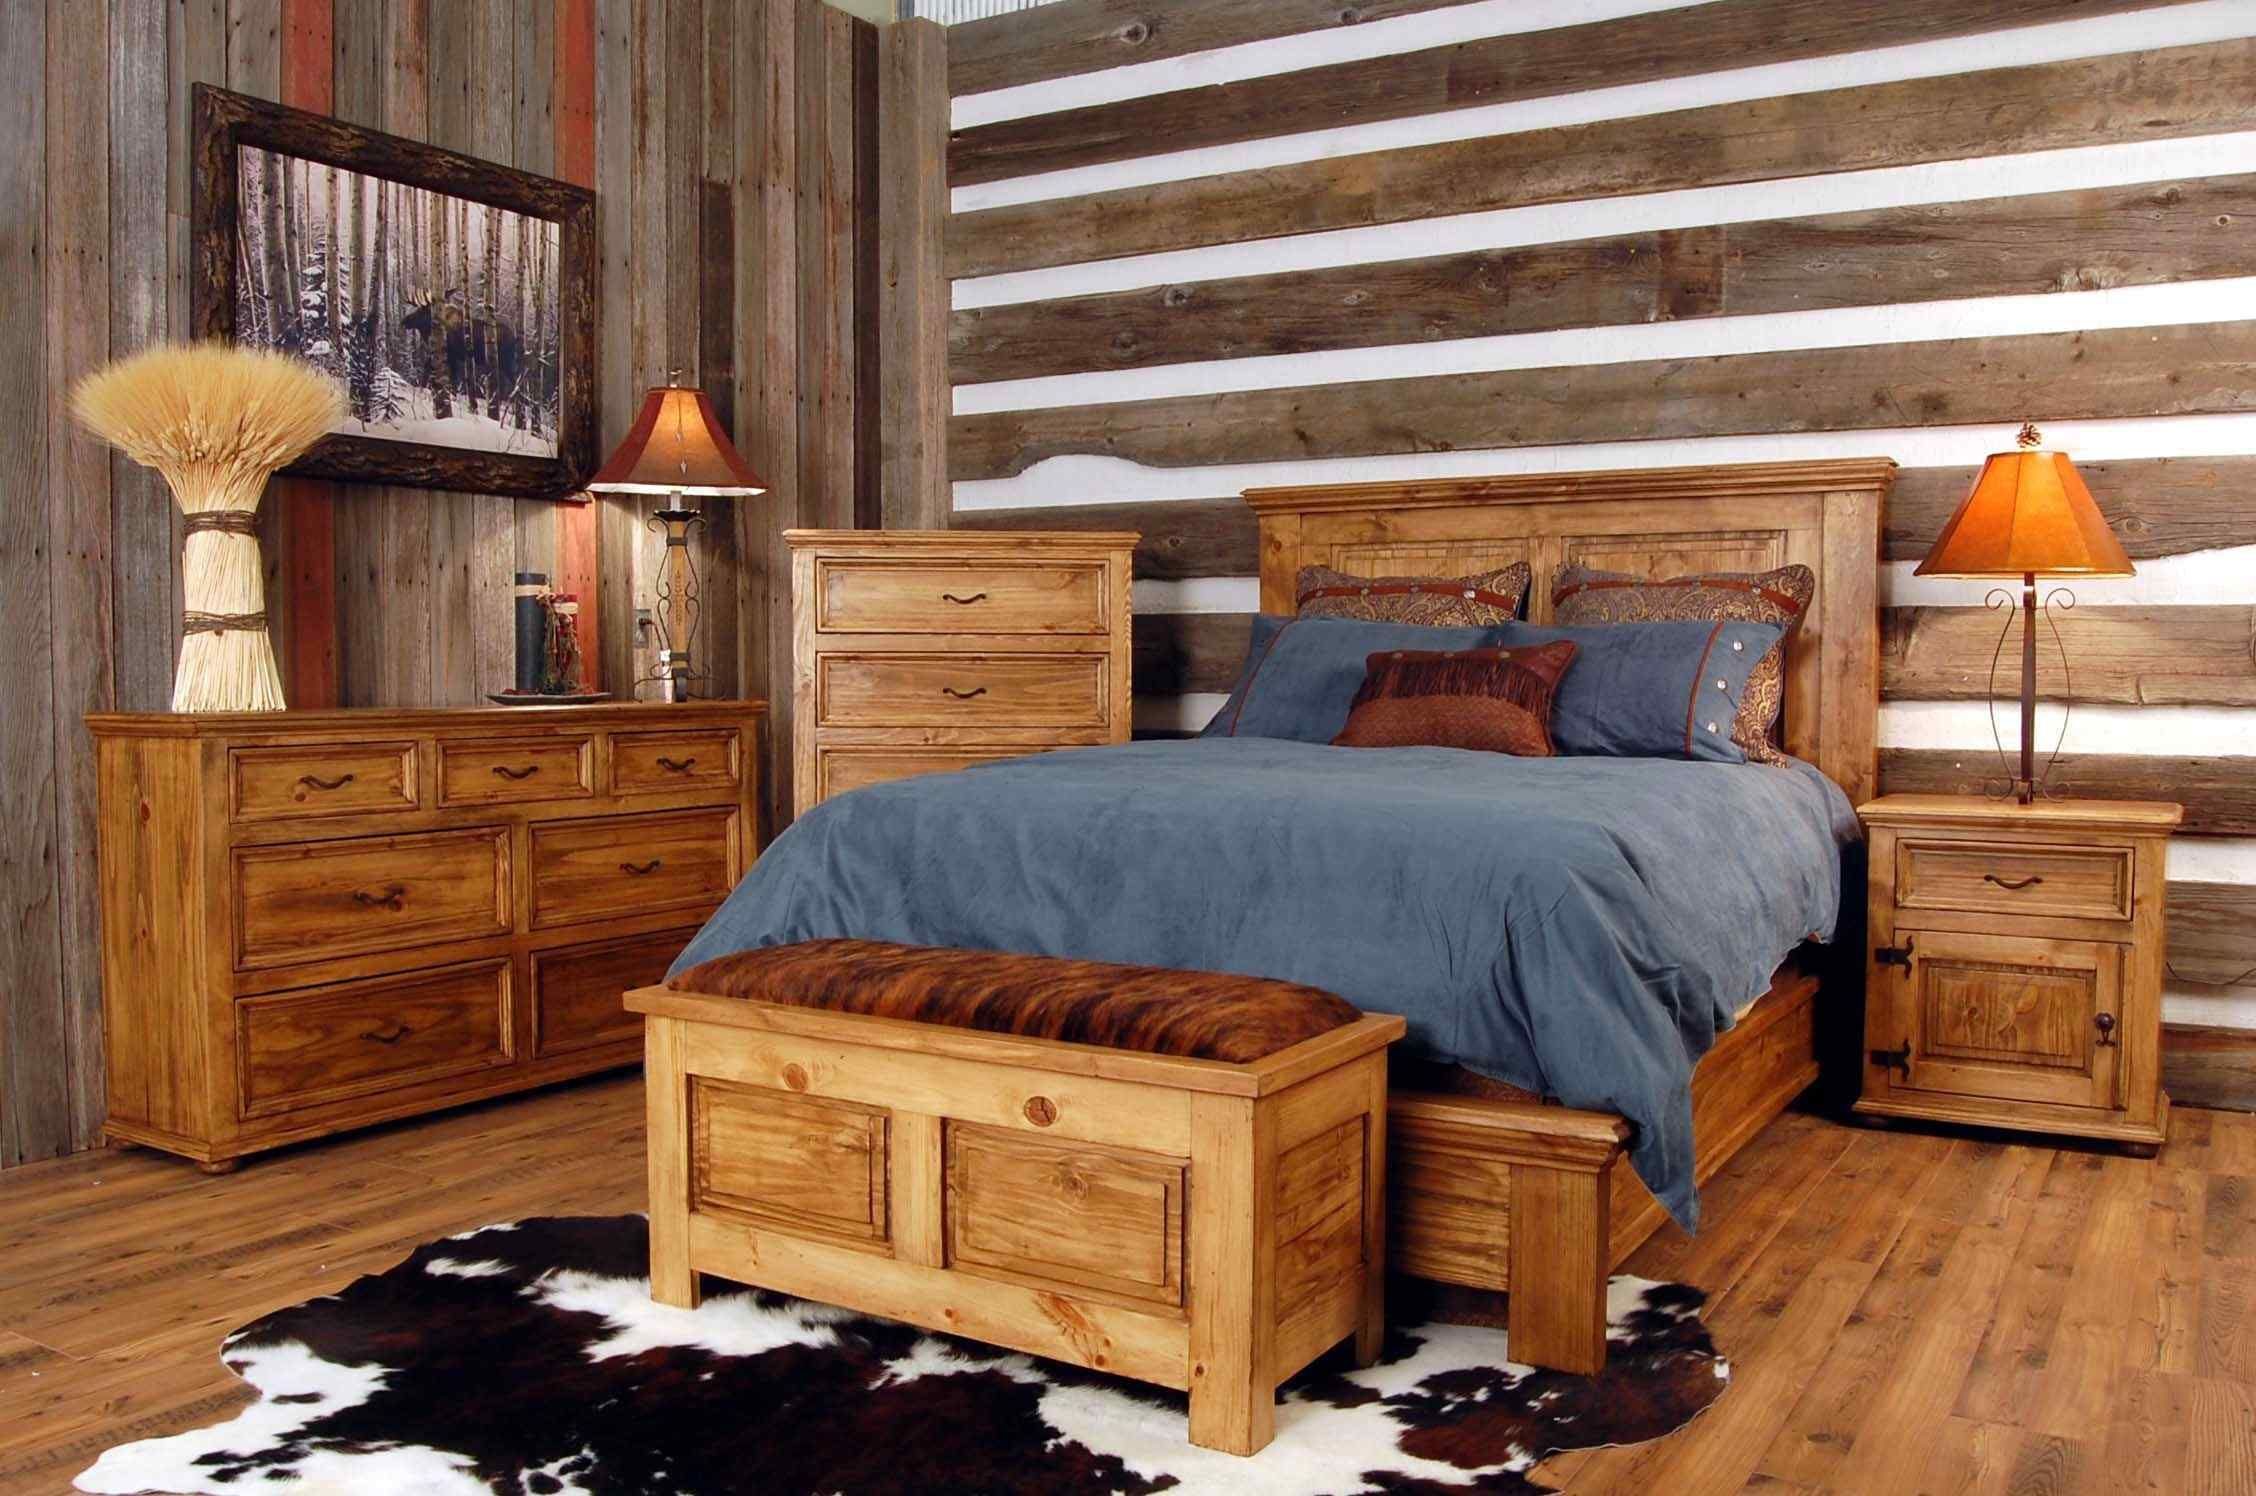 20 Ideas Elegant Rustic Farmhouse Bedroom Master Suite Rustic